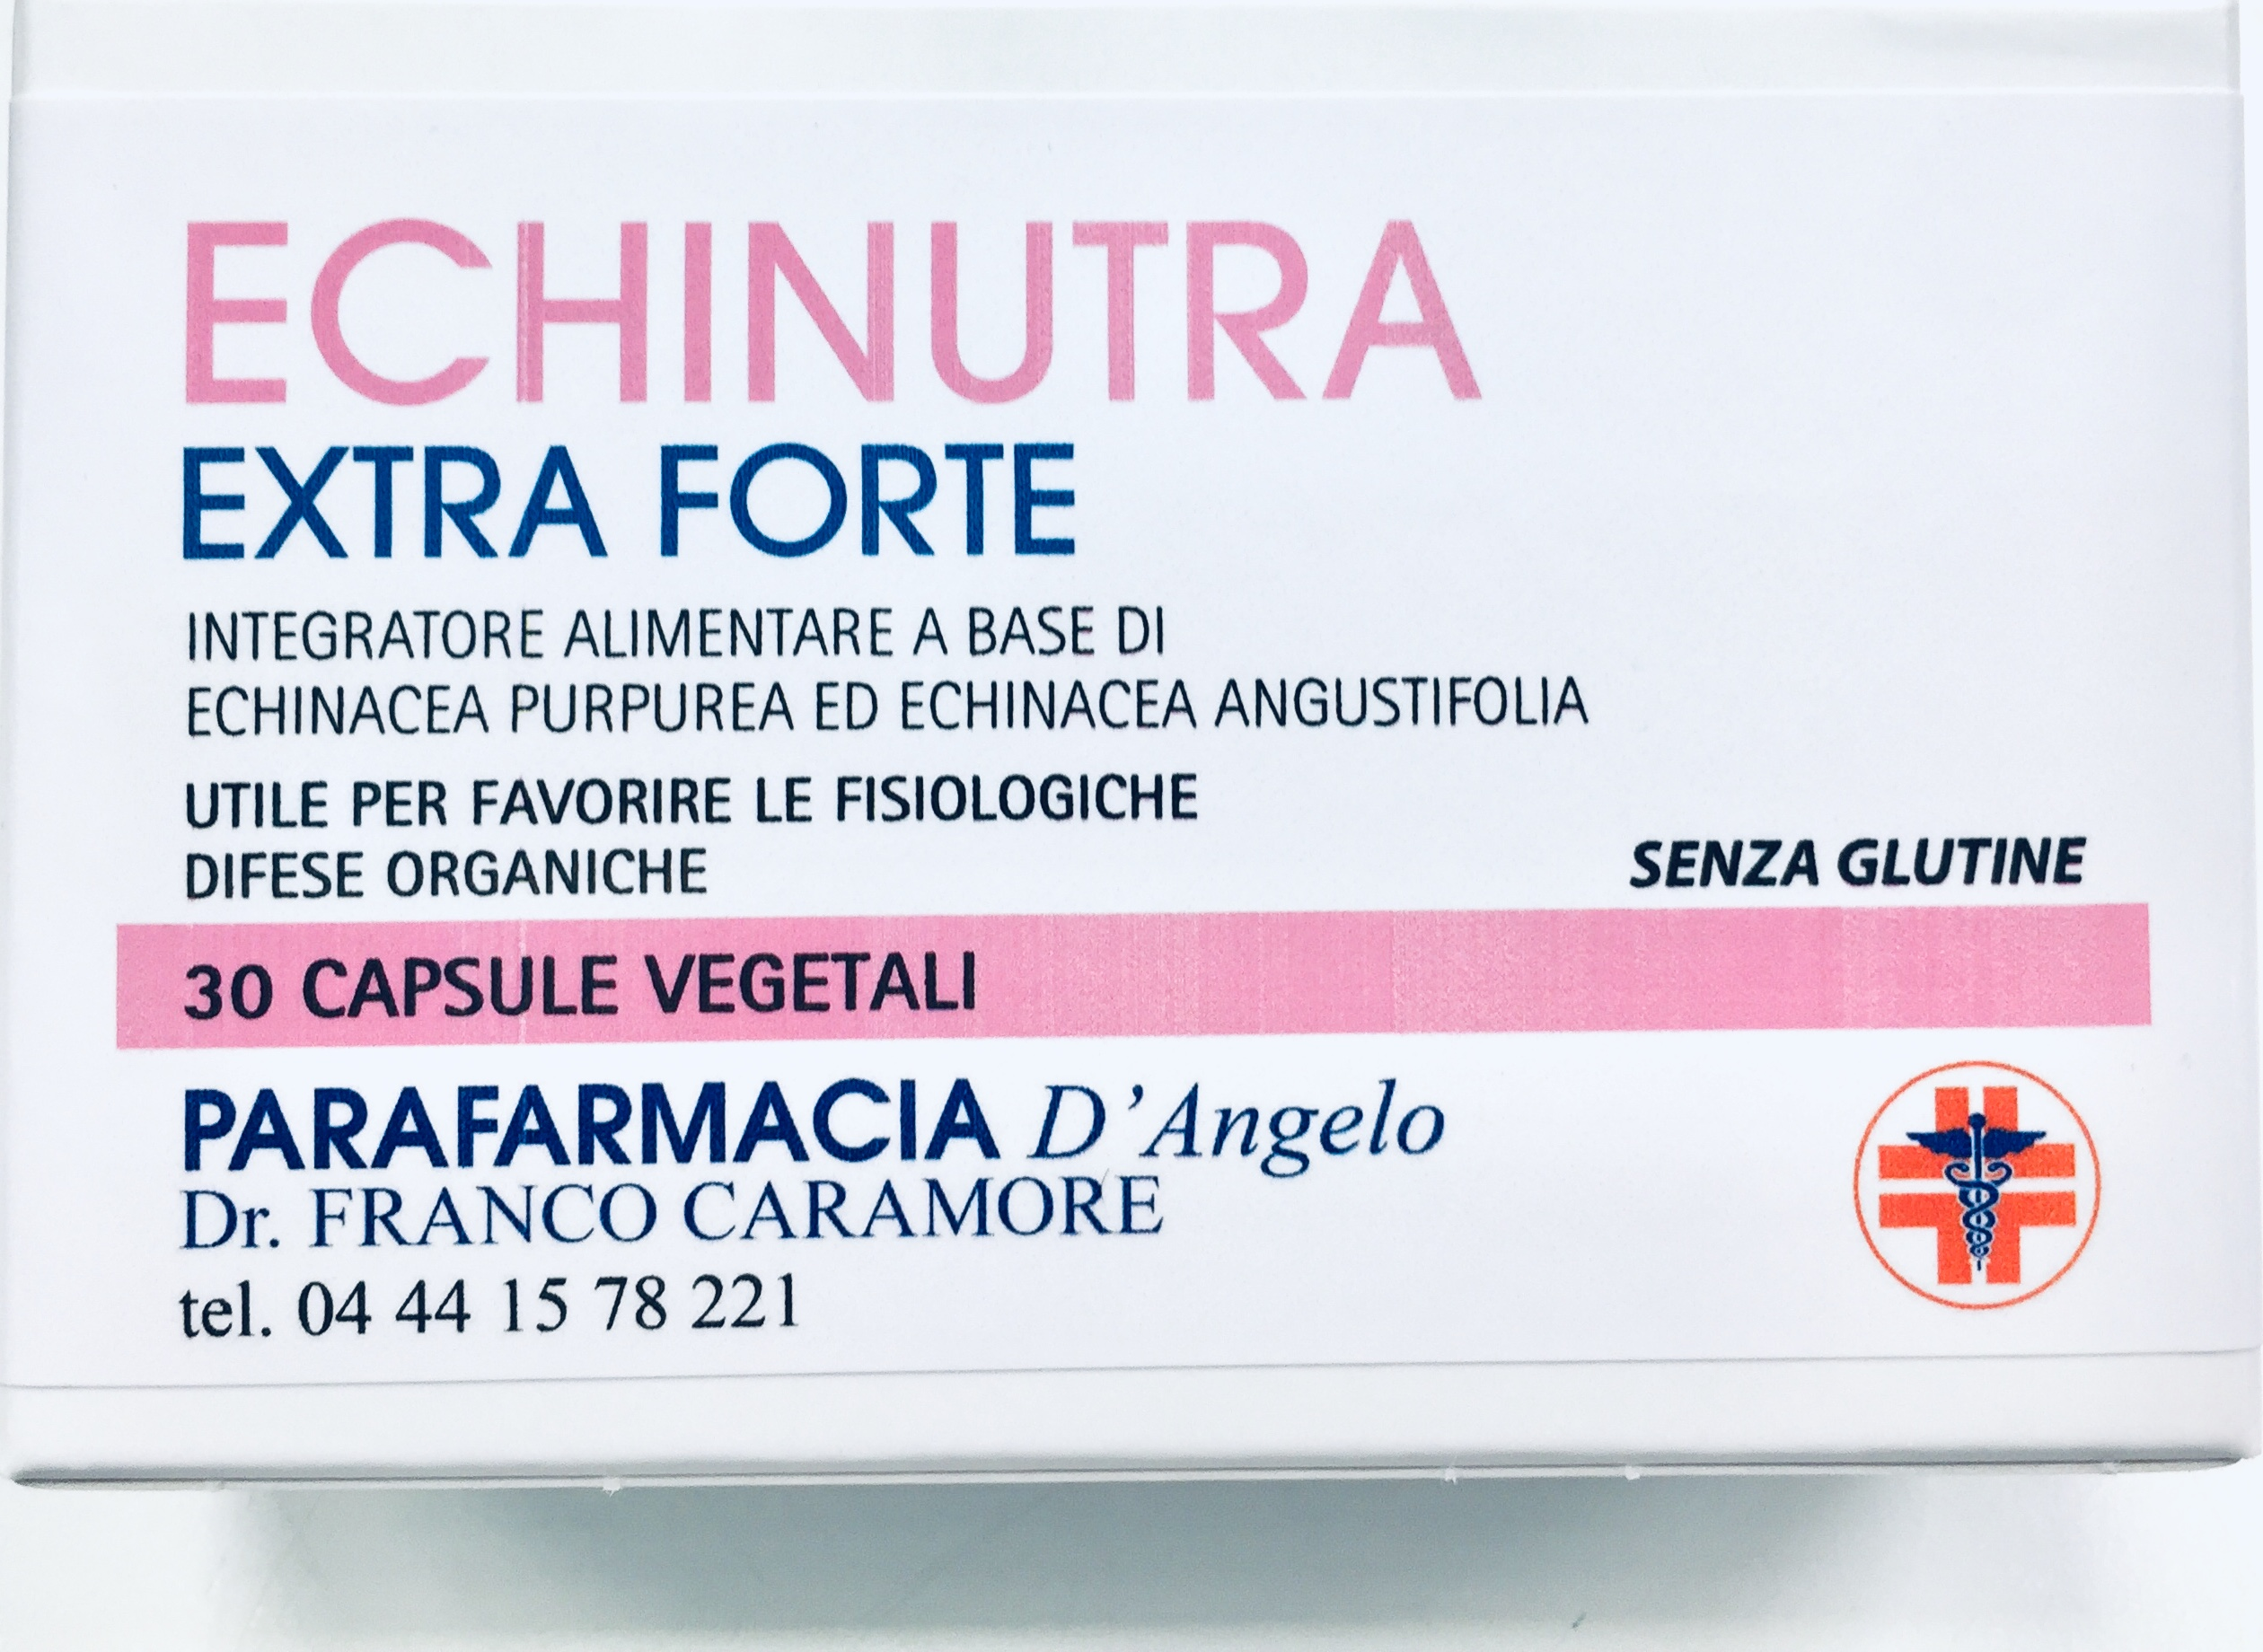 ECHINUTRA extra forte 30 cps